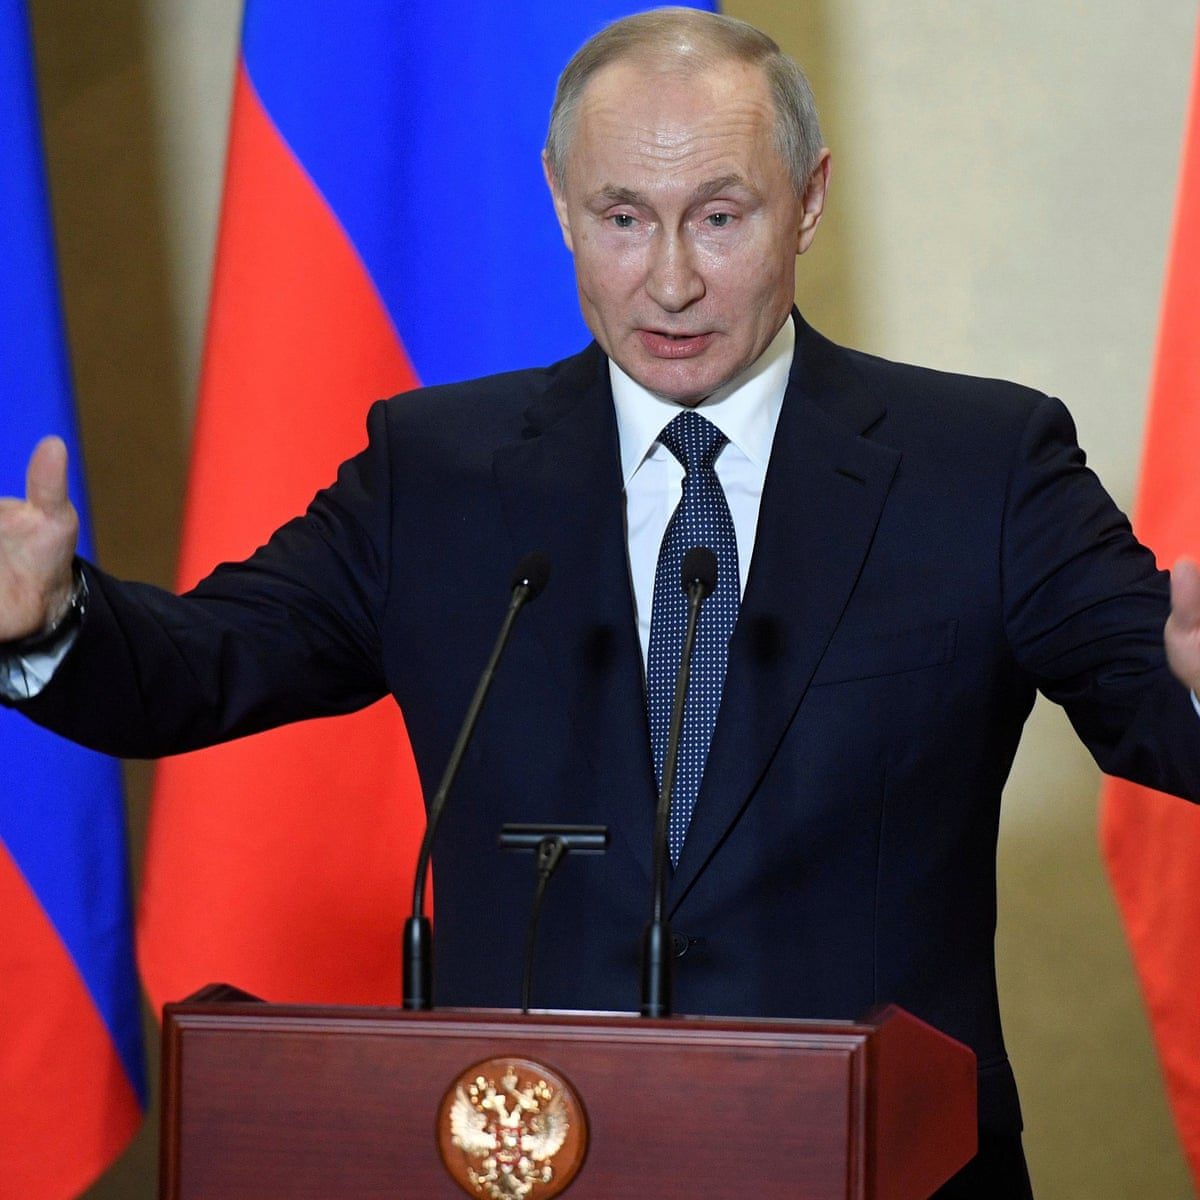 Putin S People By Catherine Belton Review Relentless And Convincing Politics Books The Guardian